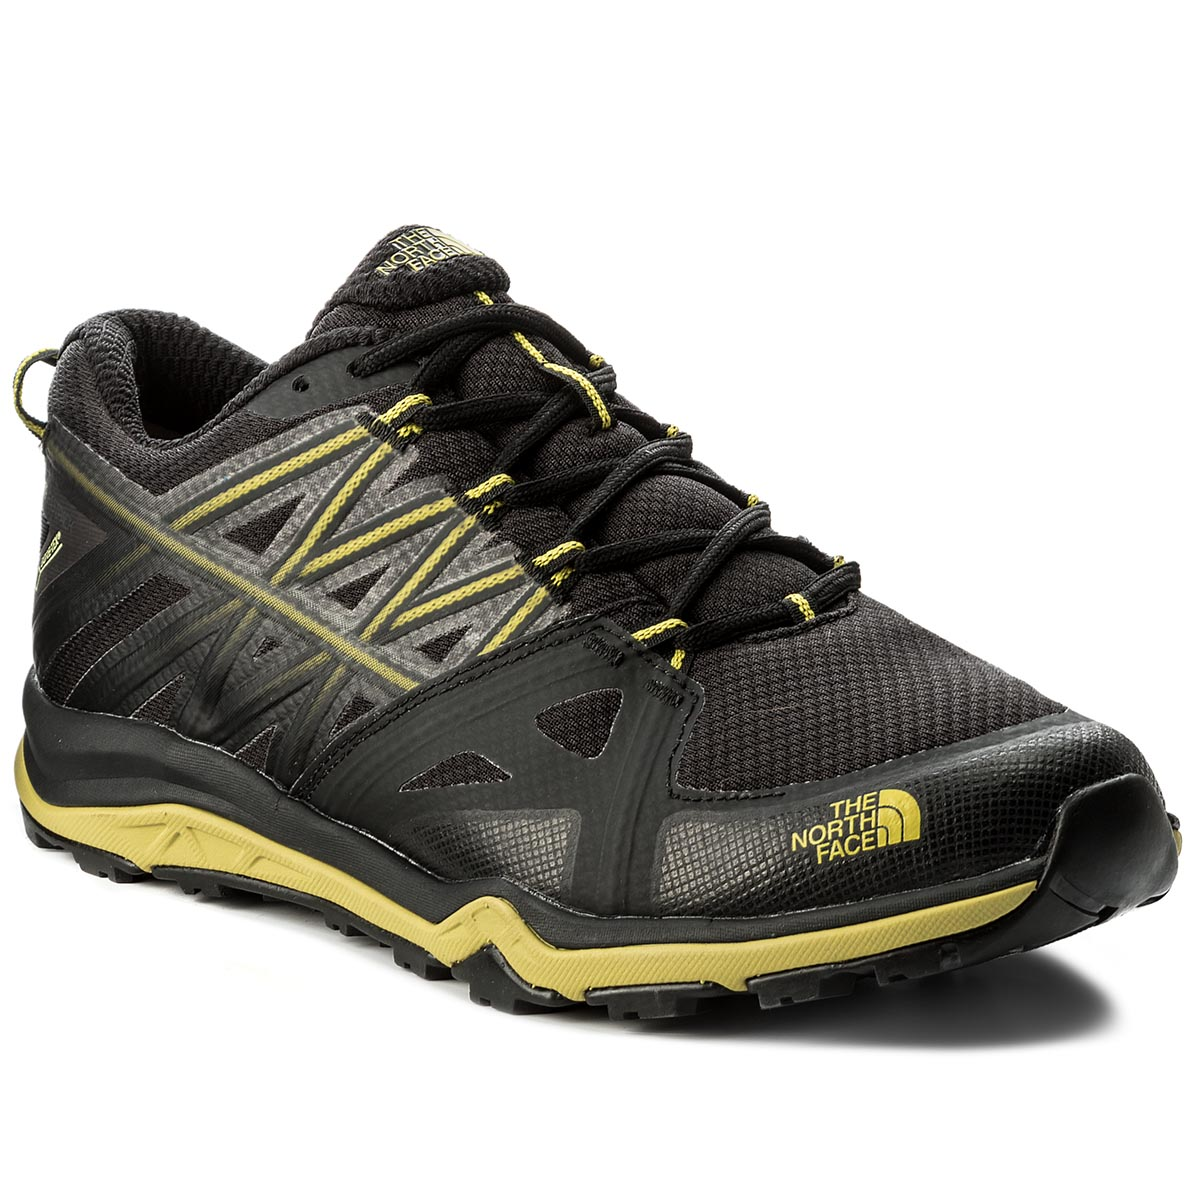 Trekkings THE NORTH FACE - Hedgehog Fastpack Lite II GTX GORE-TEX T92UX5CIV Tnf Black/Citronelle Green